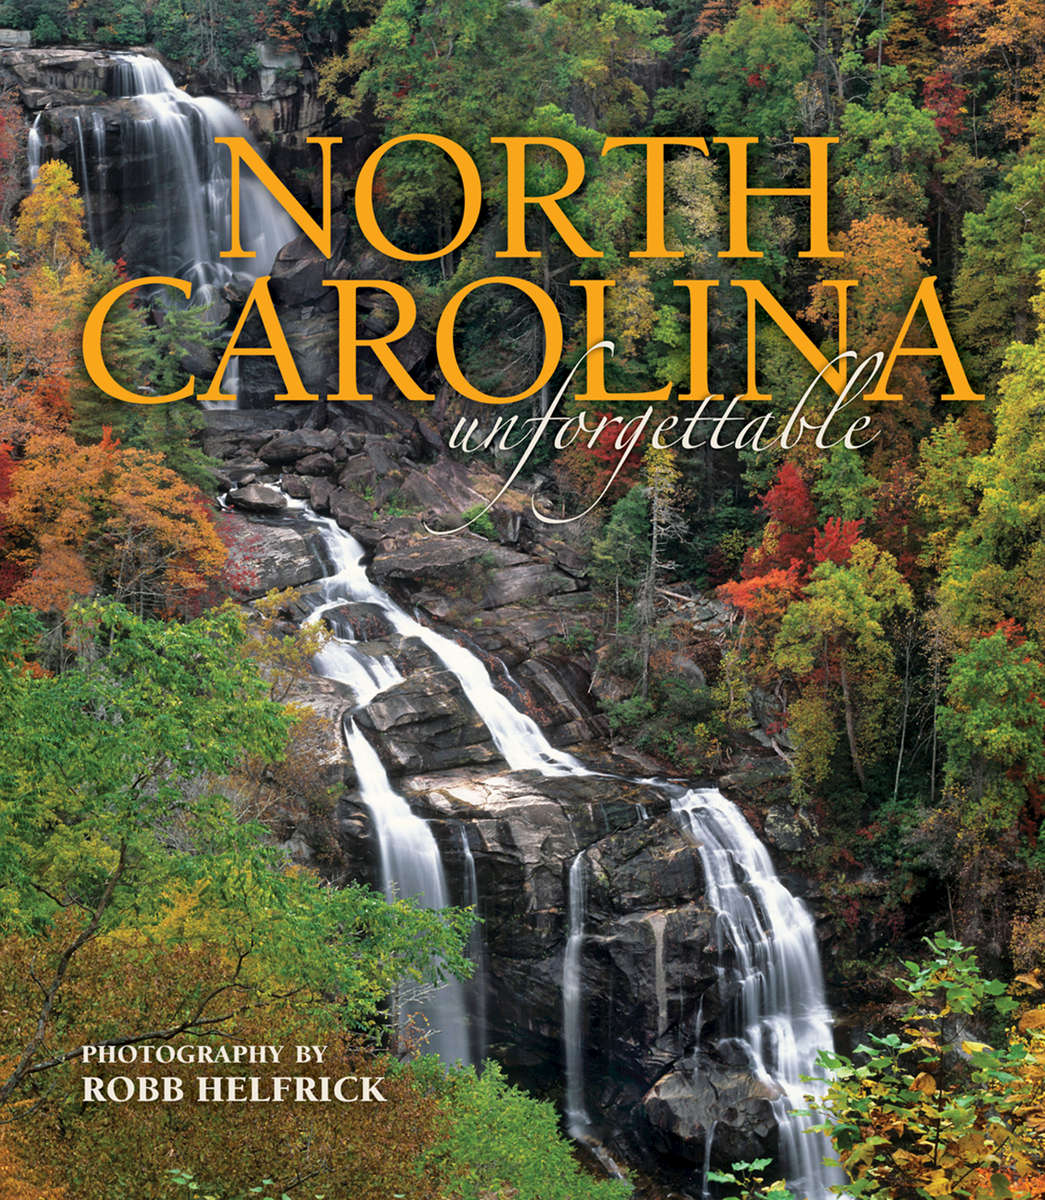 North-Carolina-Unforgettable